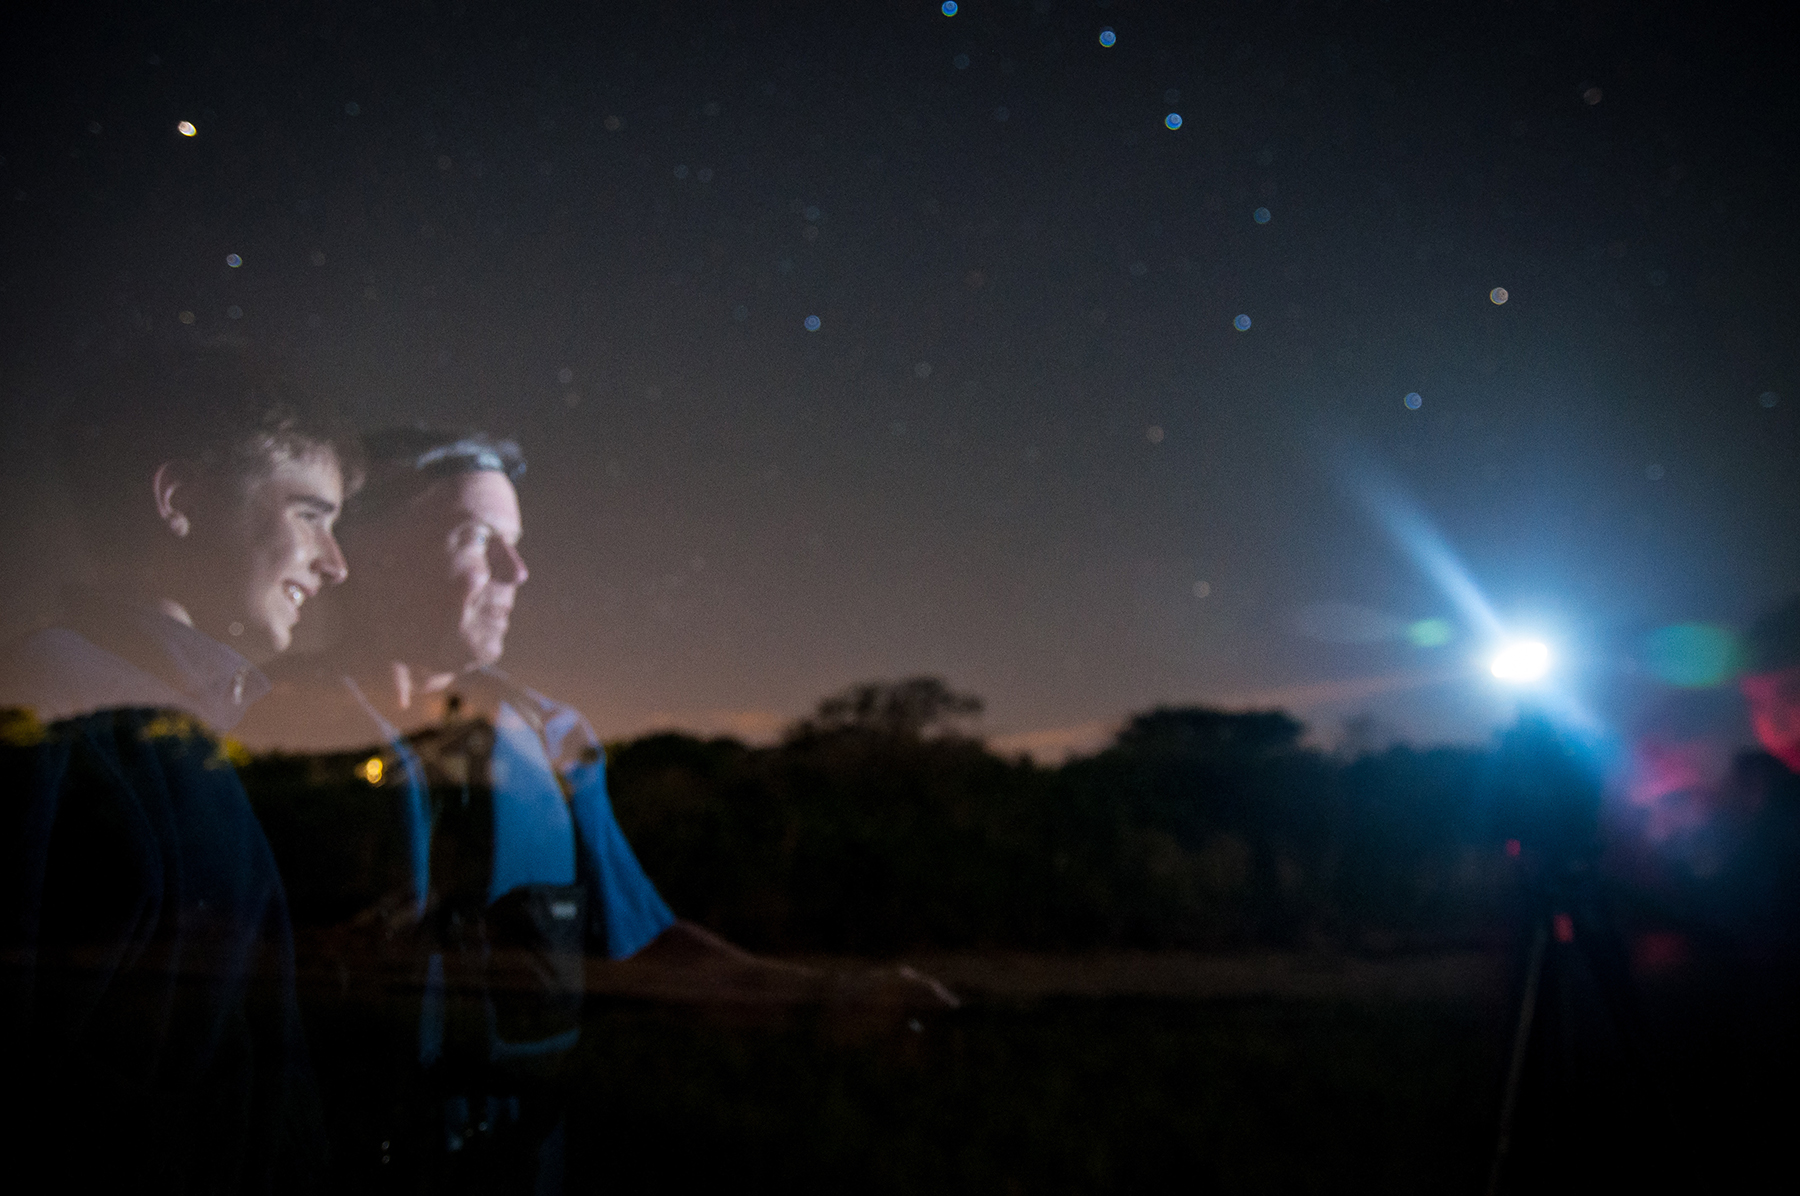 On a beautiful night in the summer of 2012, I took this self-portrait of Grandude and myself when he was teaching me how to photograph the stars. (Photos by Colin Boyle/Northwestern University)